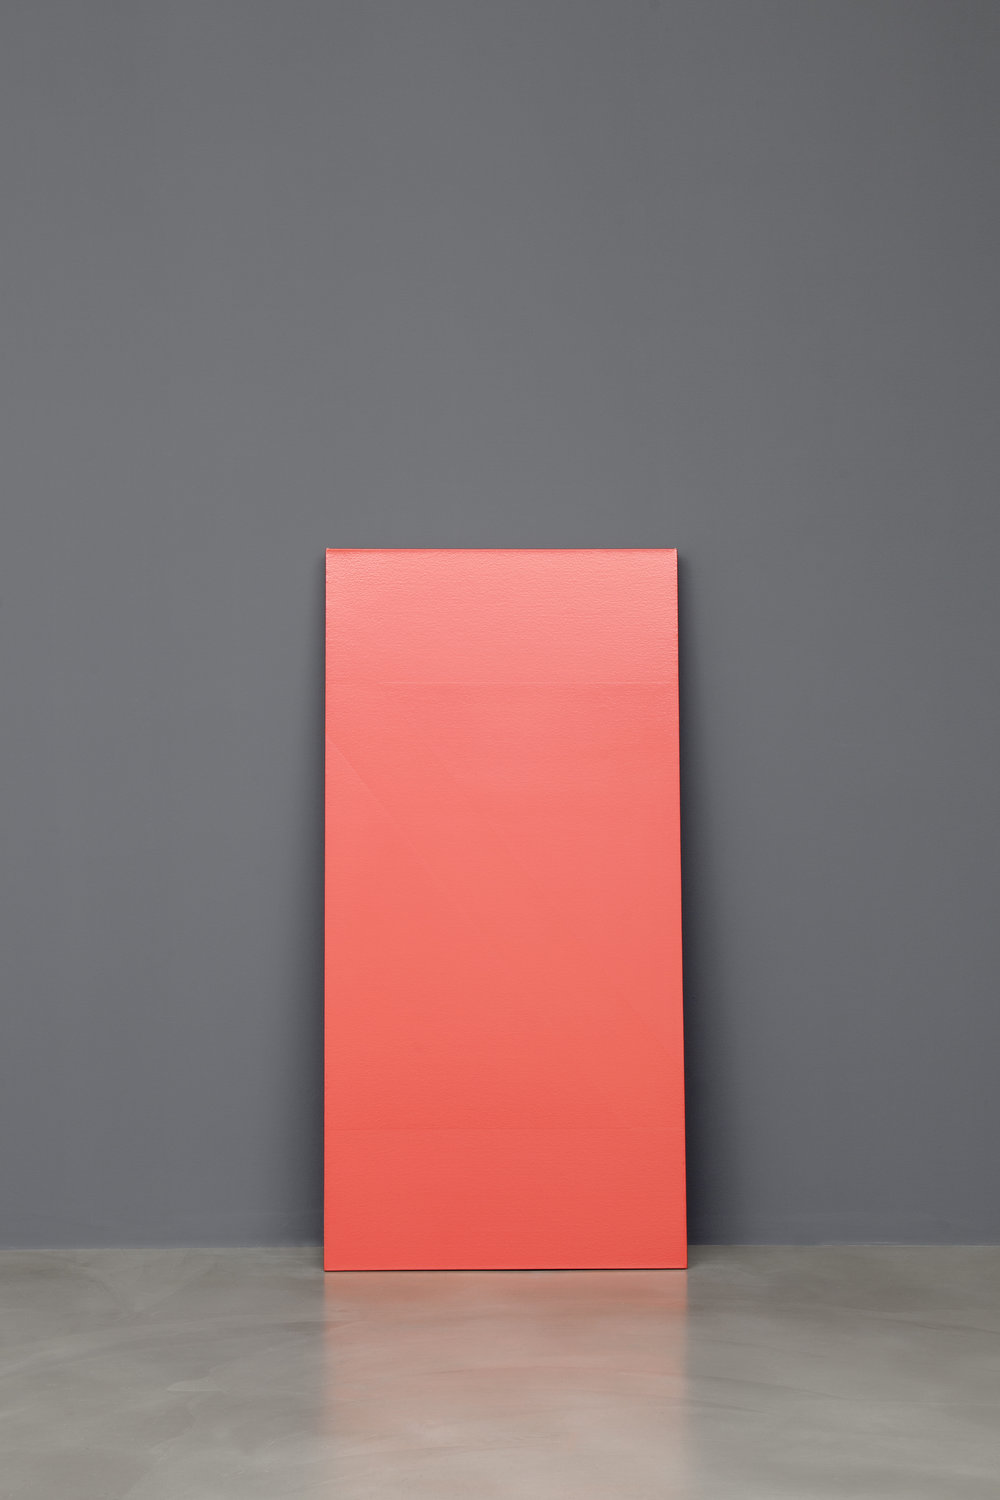 Wedge , 2015 one shot sign paint on canvas 153,4 x 75,8 cm (60 3/8 x 29 7/8 in)